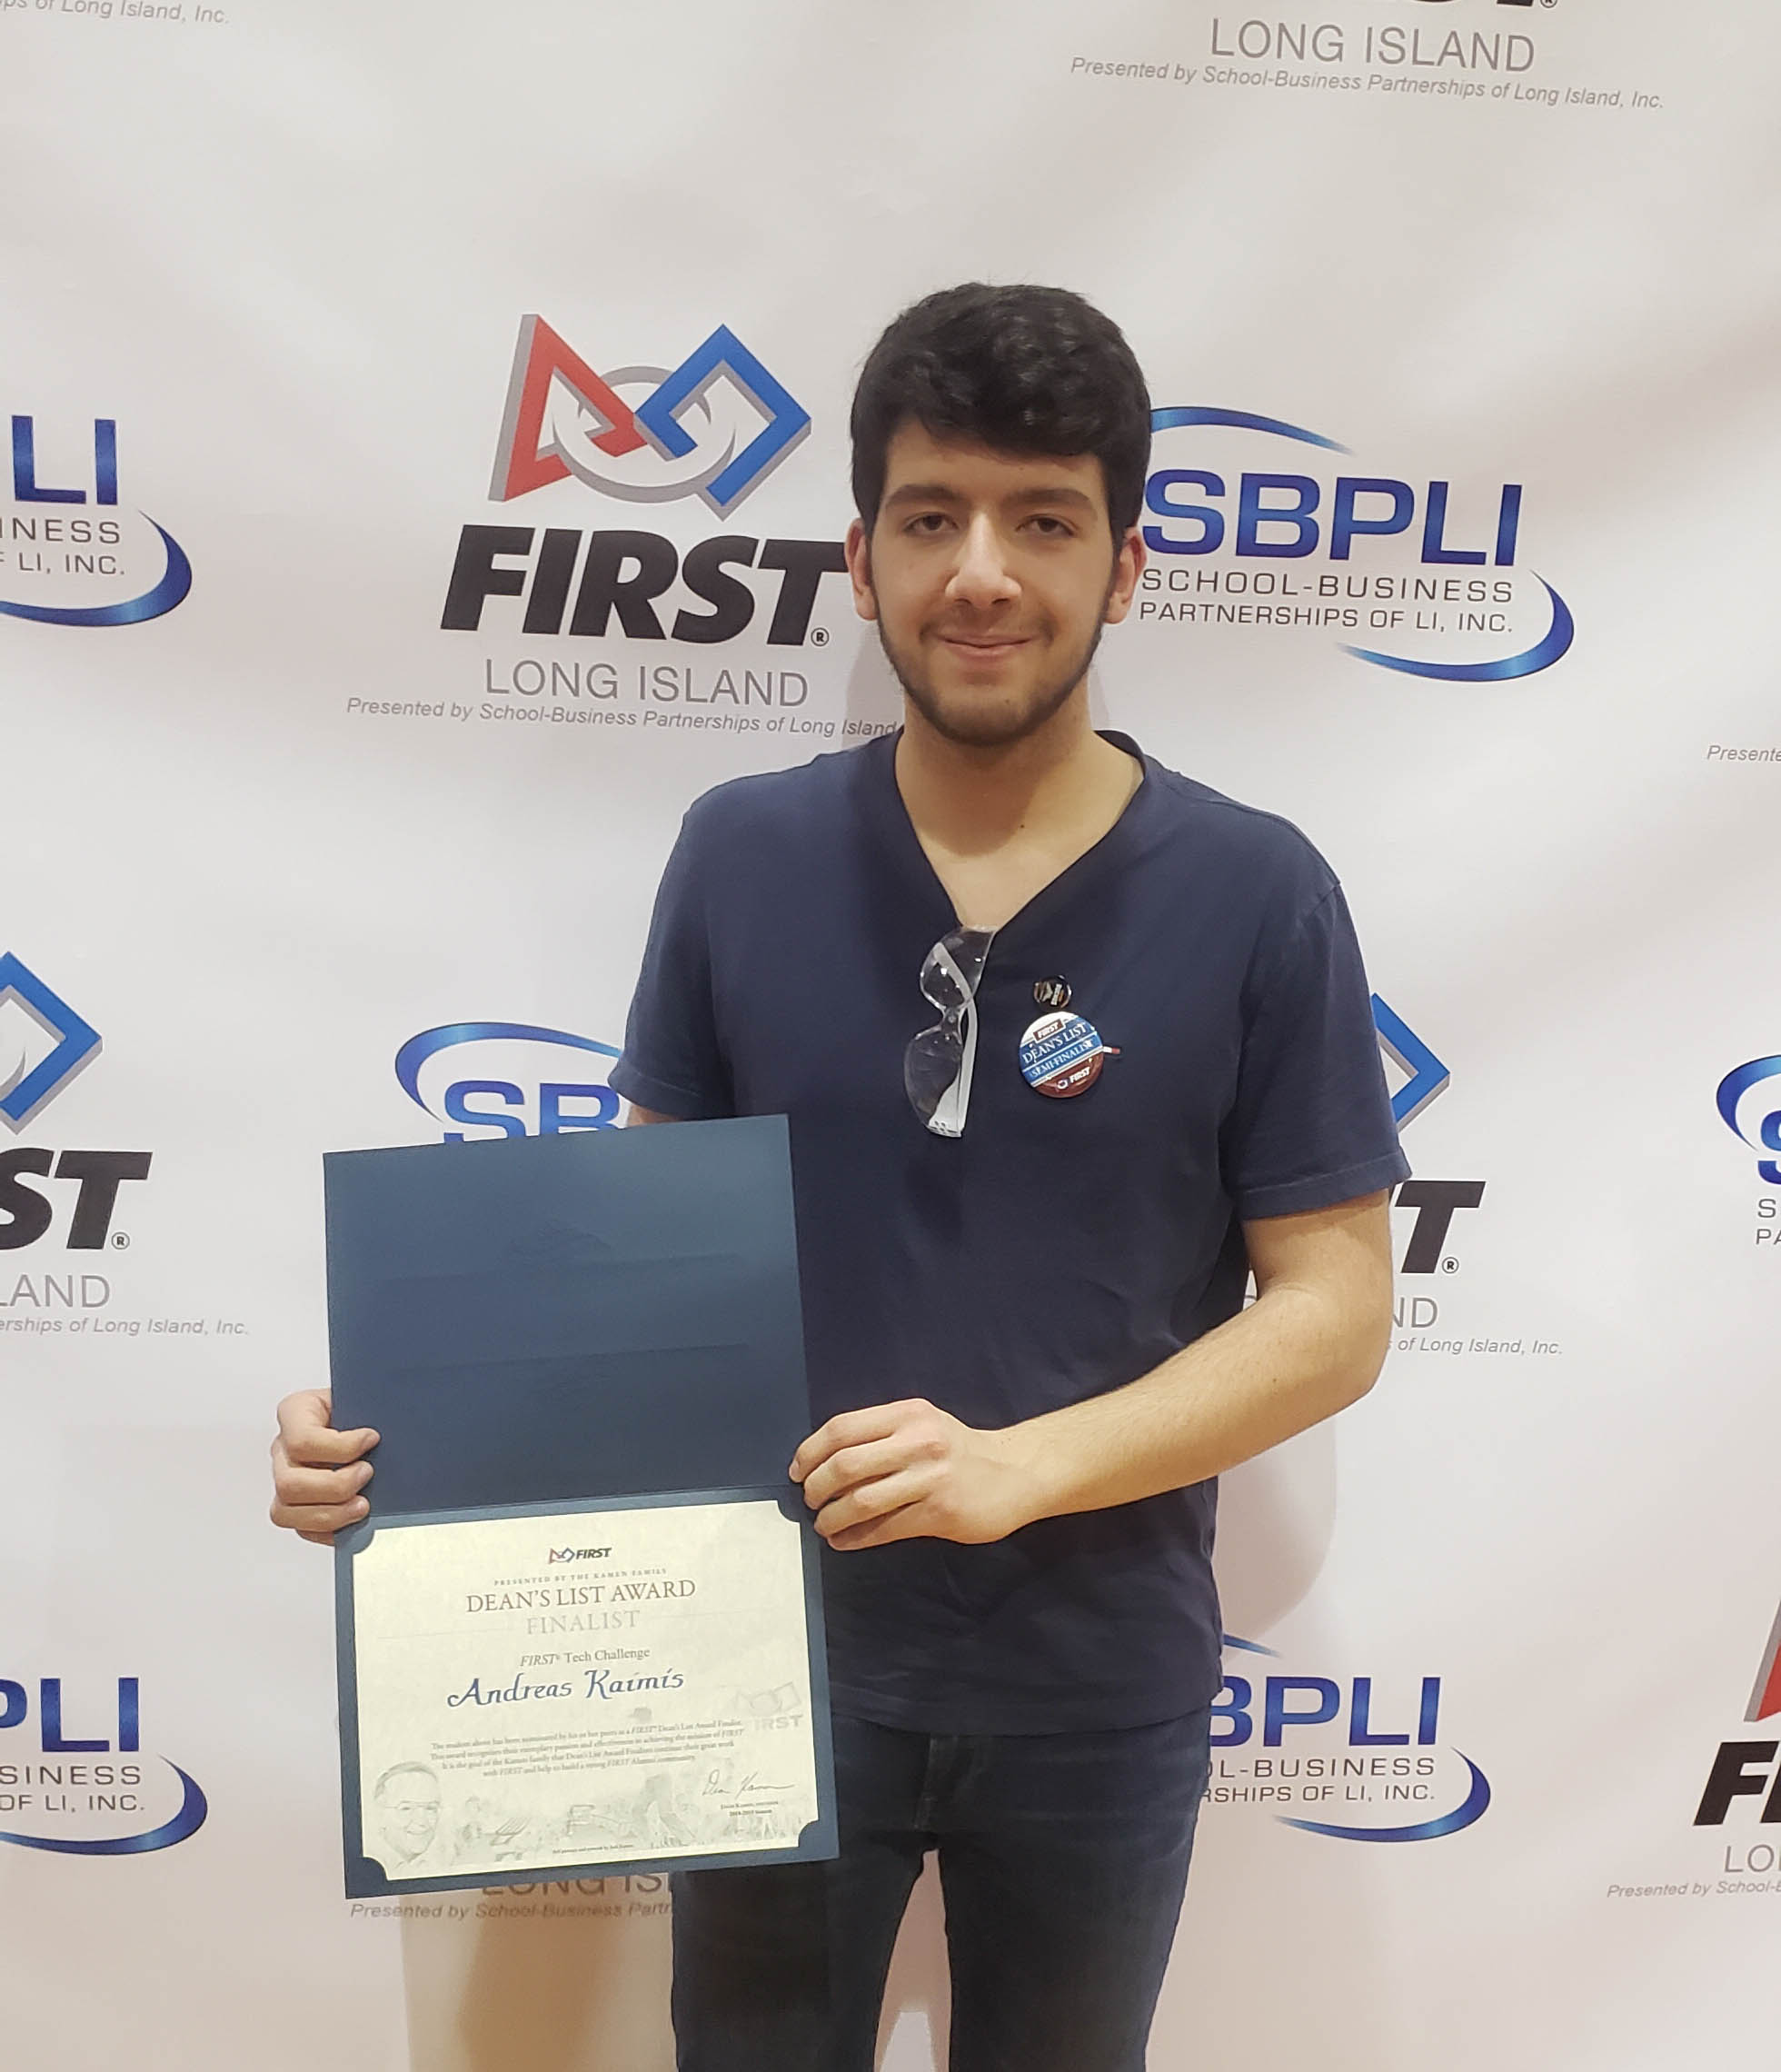 Andreas Kaimis A Finalist For FIRST Robotics Dean's List